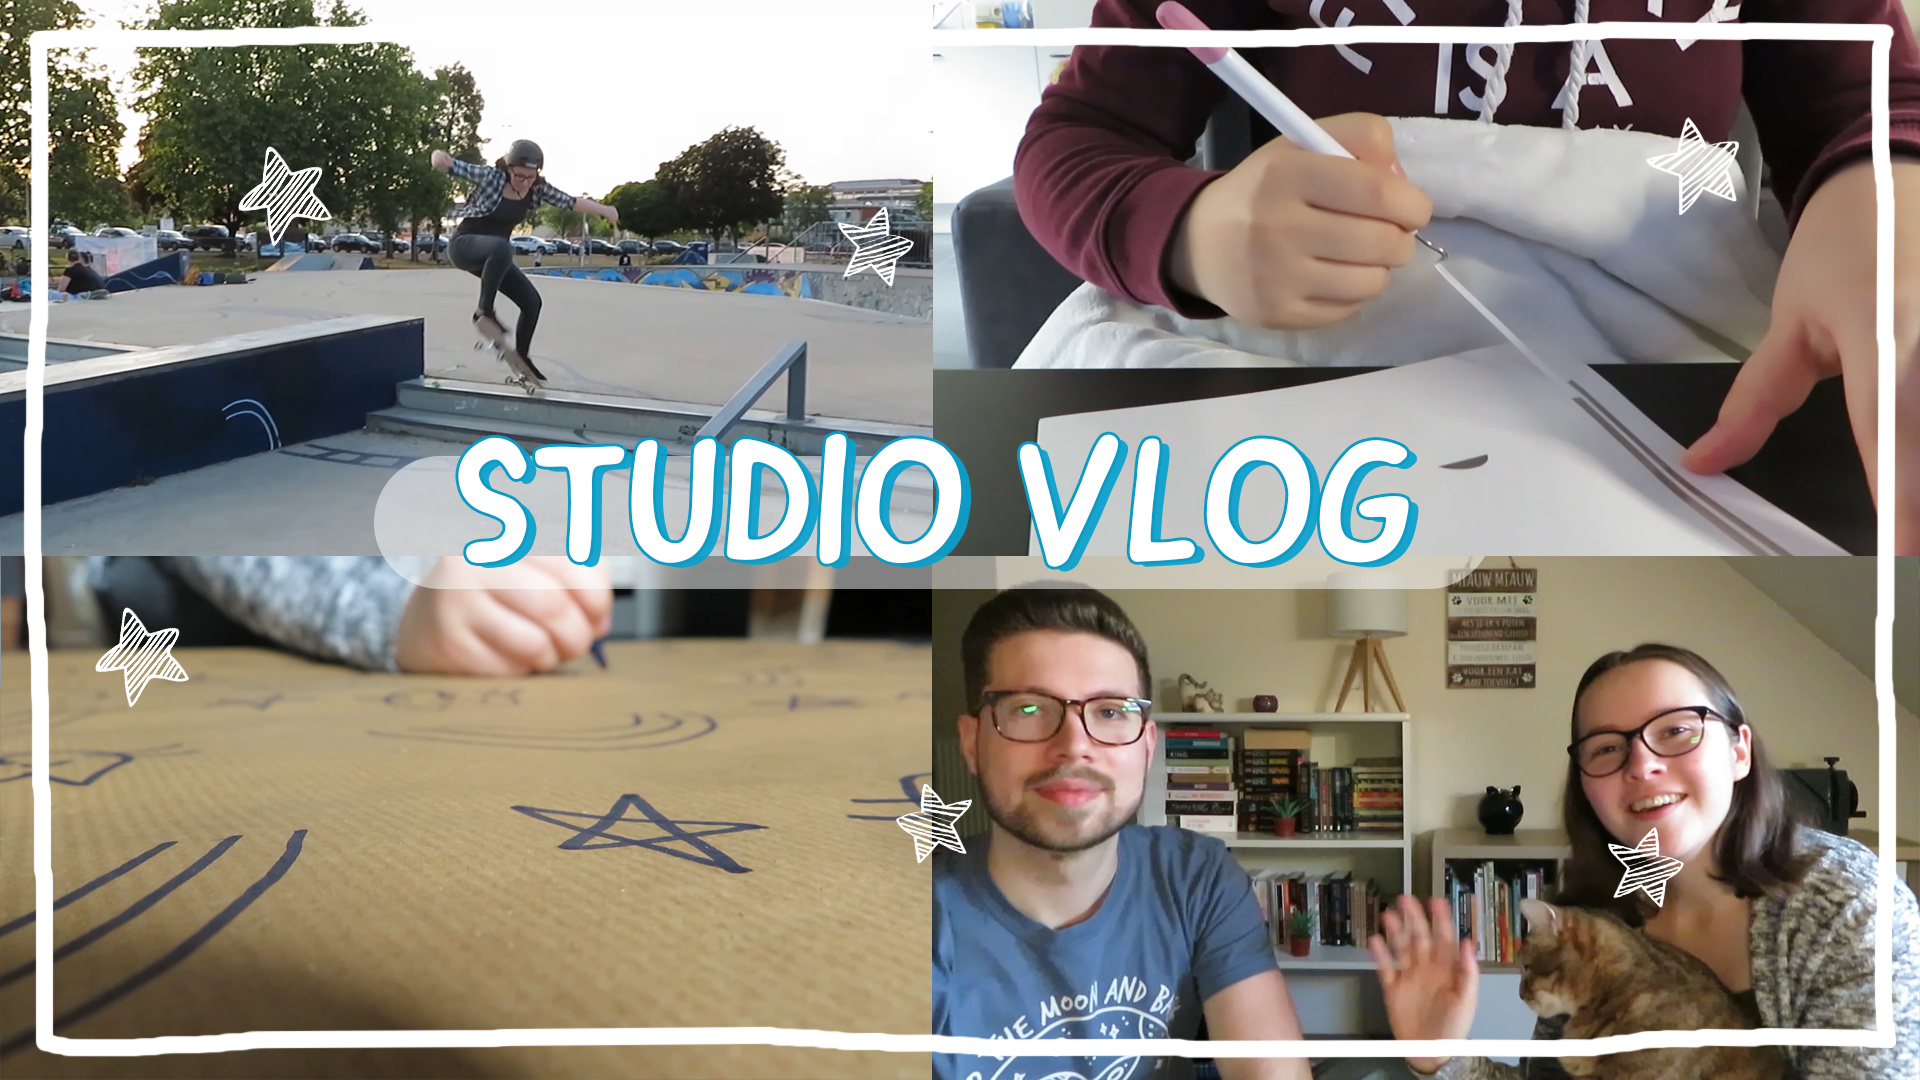 STUDIO VLOG 10 | What went wrong this week - Making orders - Being outside again